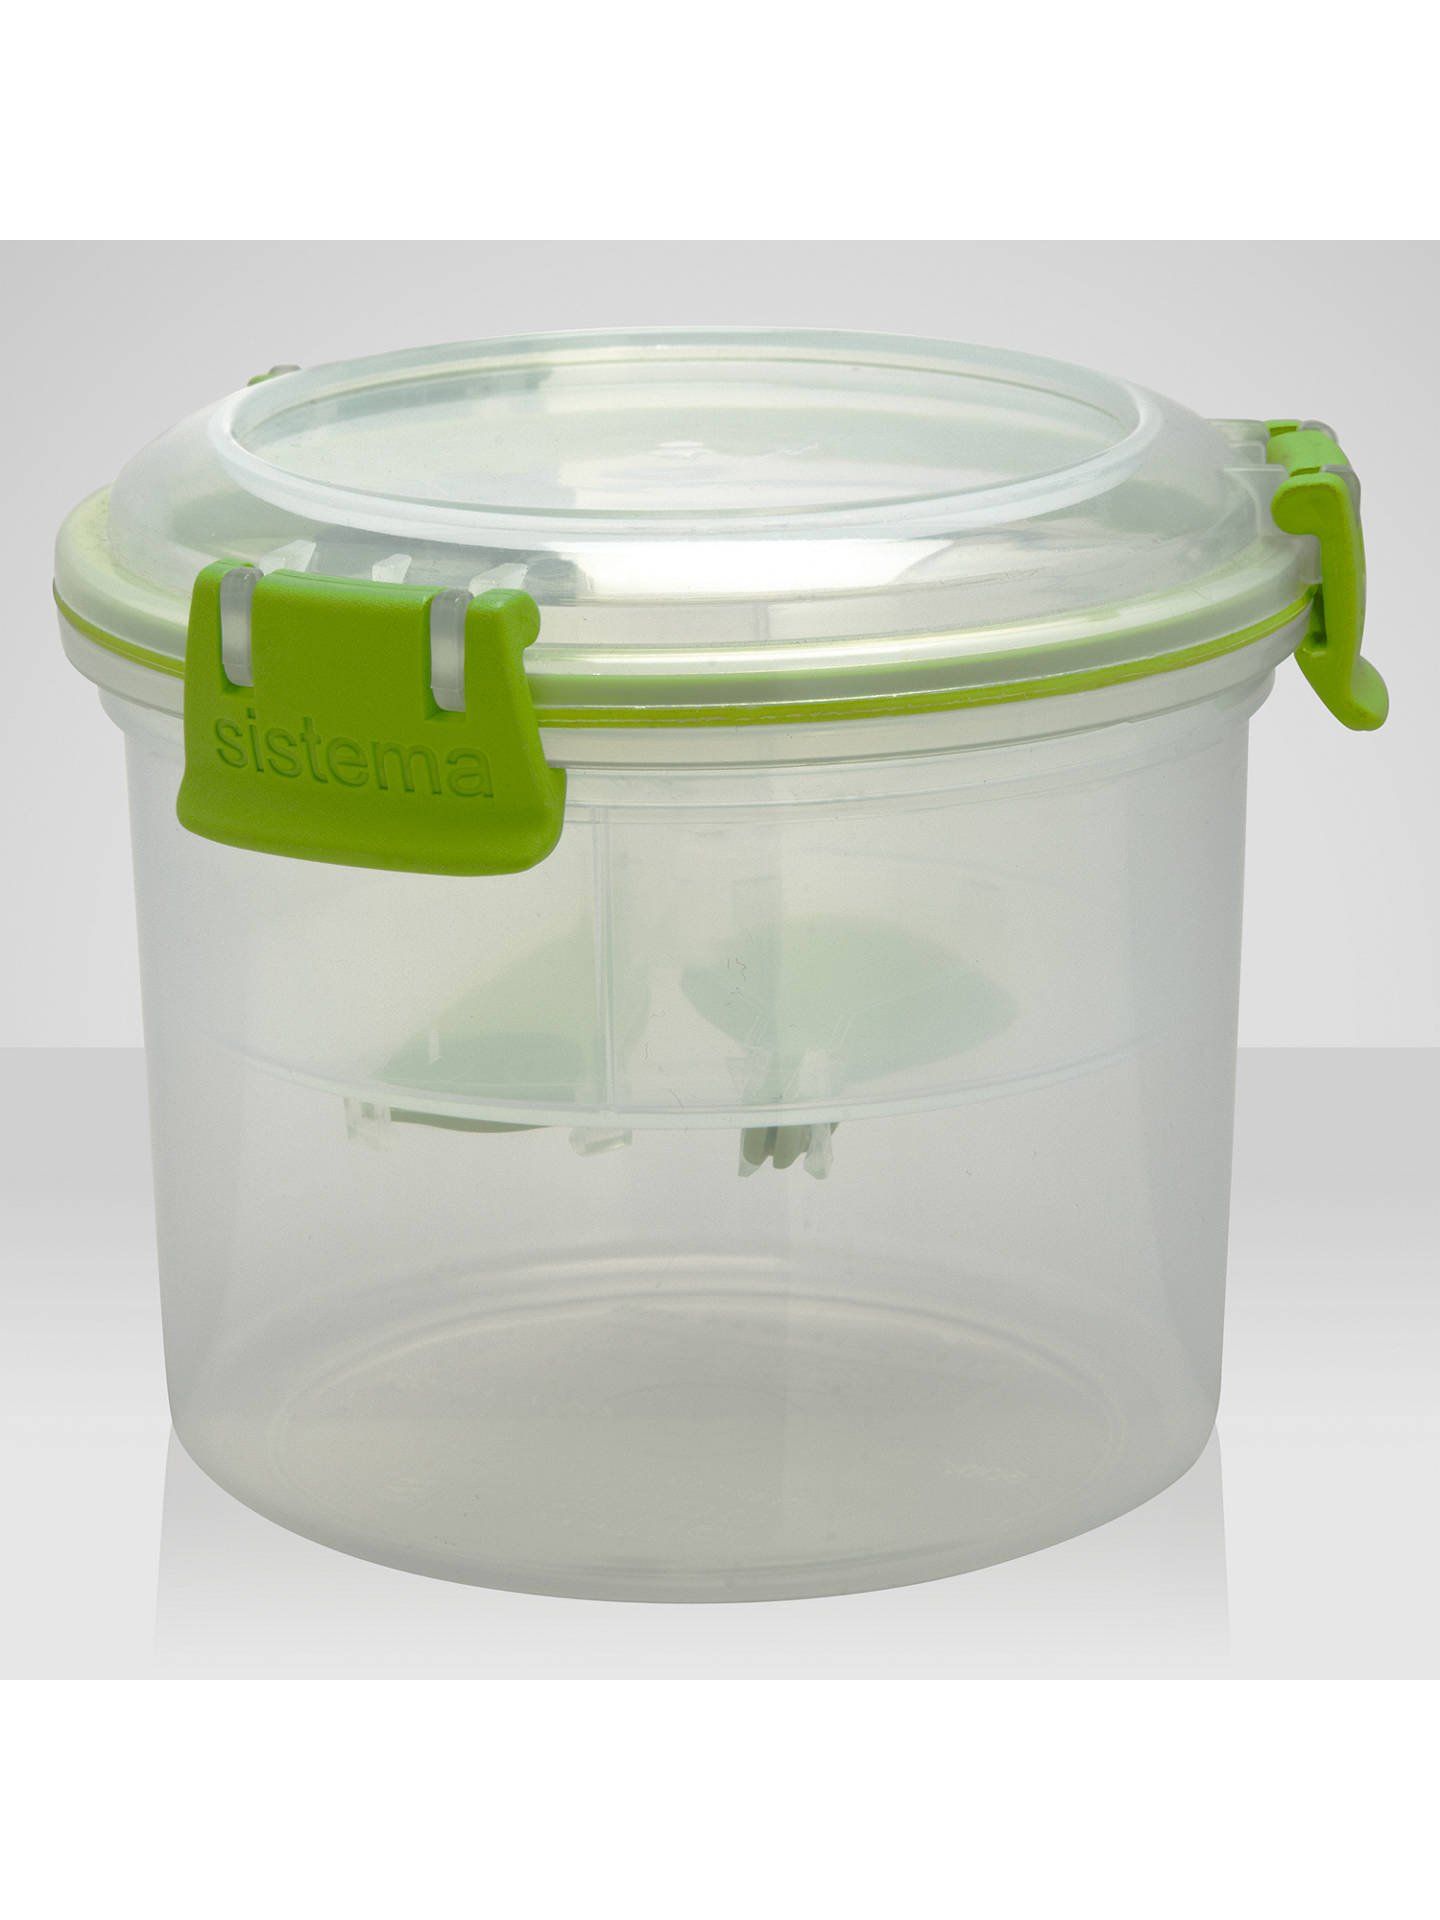 BuySistema Breakfast to Go Container Set Online at johnlewis.com